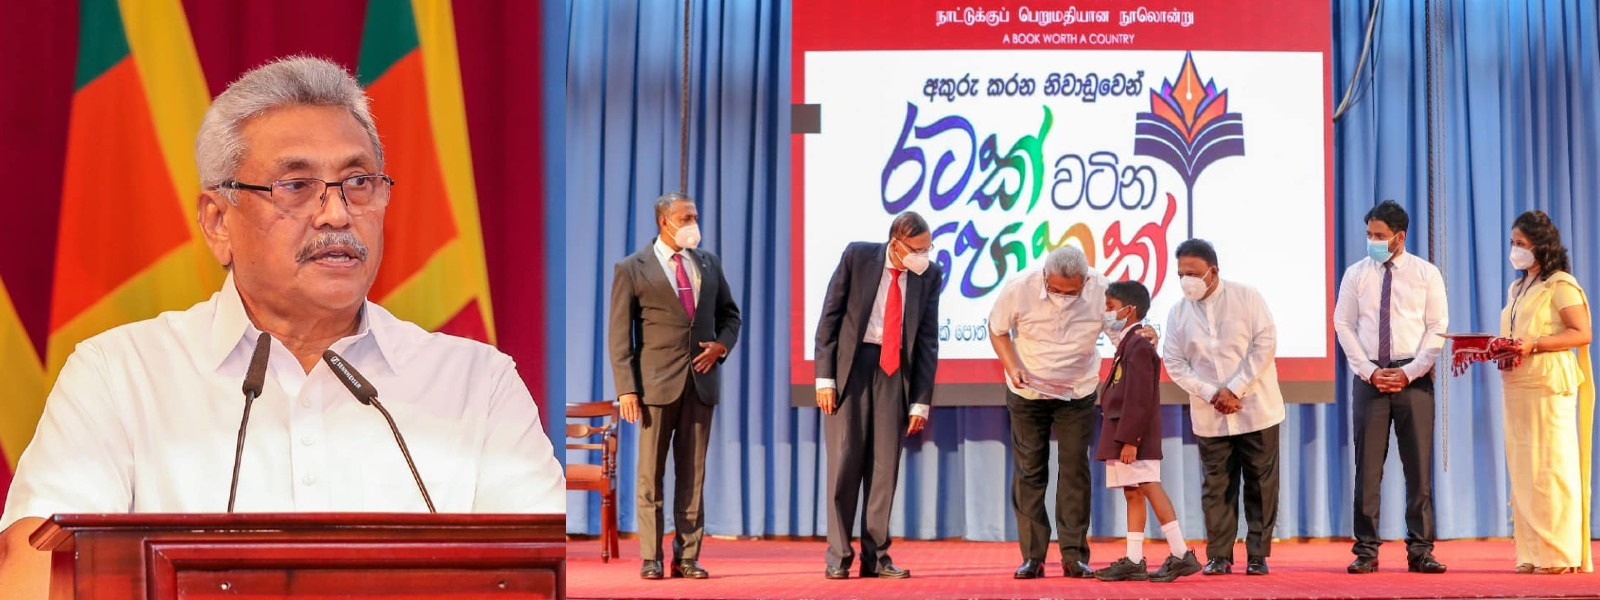 Only quality education will develop the country – President